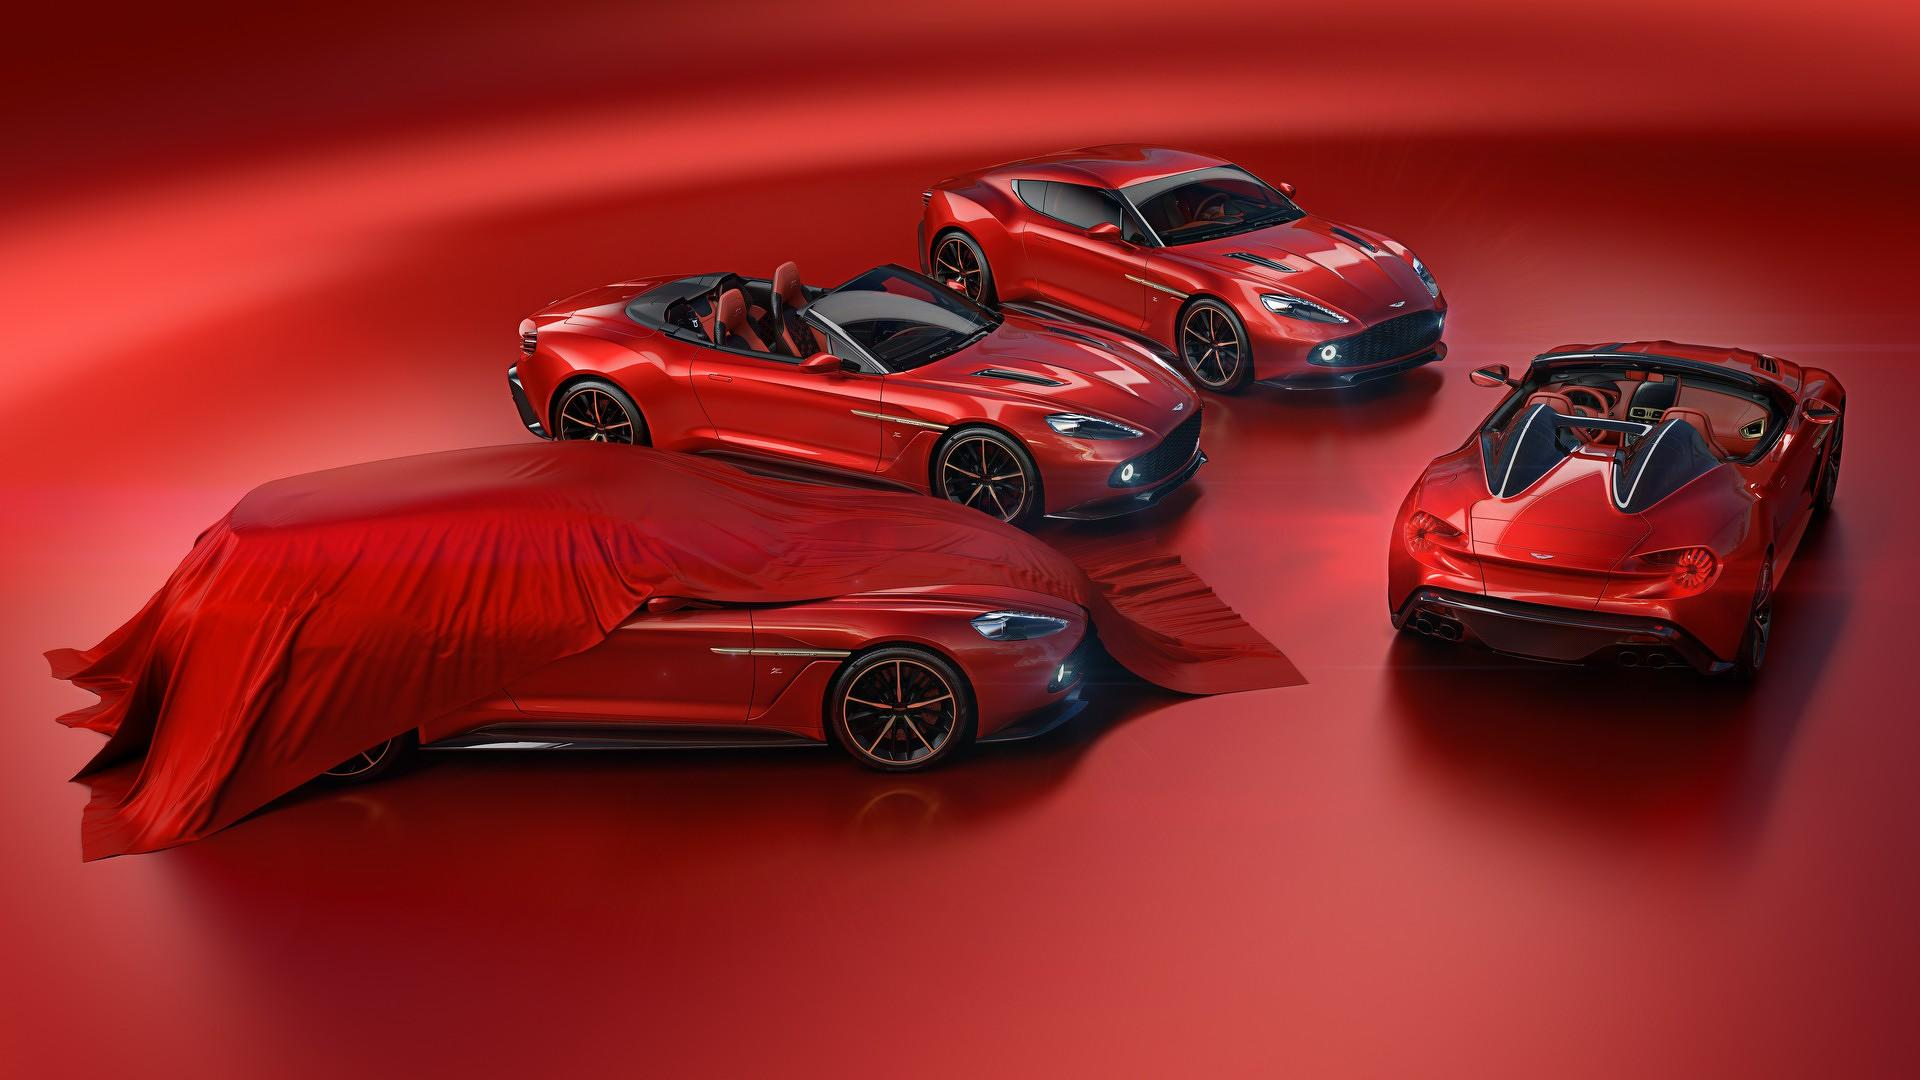 Whole Aston Martin Vanquish Zagato Collection Going To One Owner